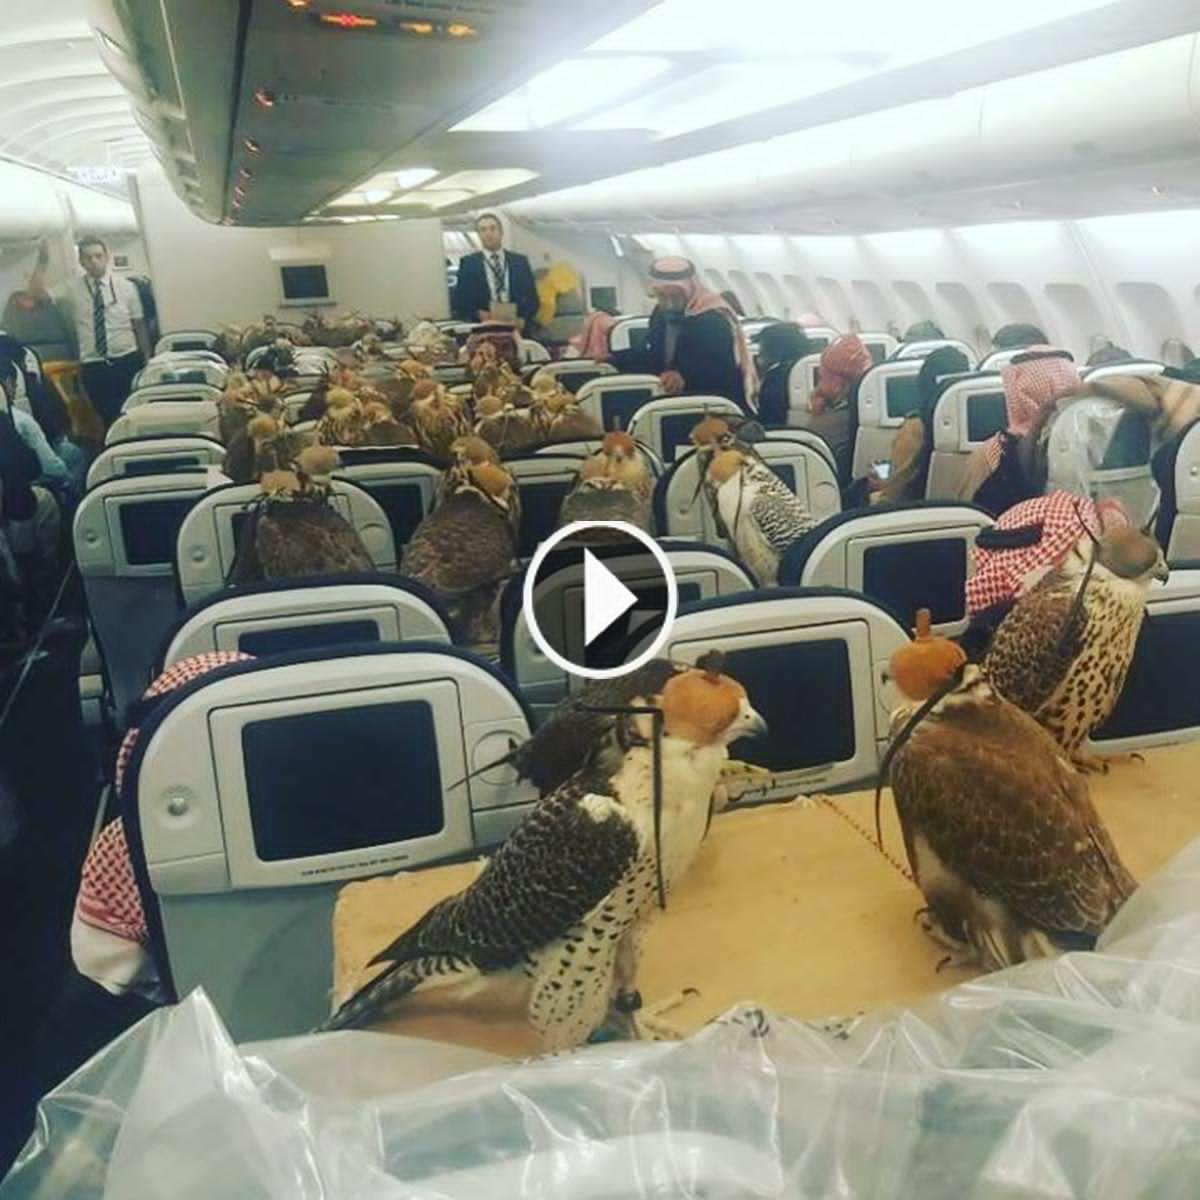 Saudi Prince Buys 80 plane Tickets So All of His Falcons Can Fly With Him